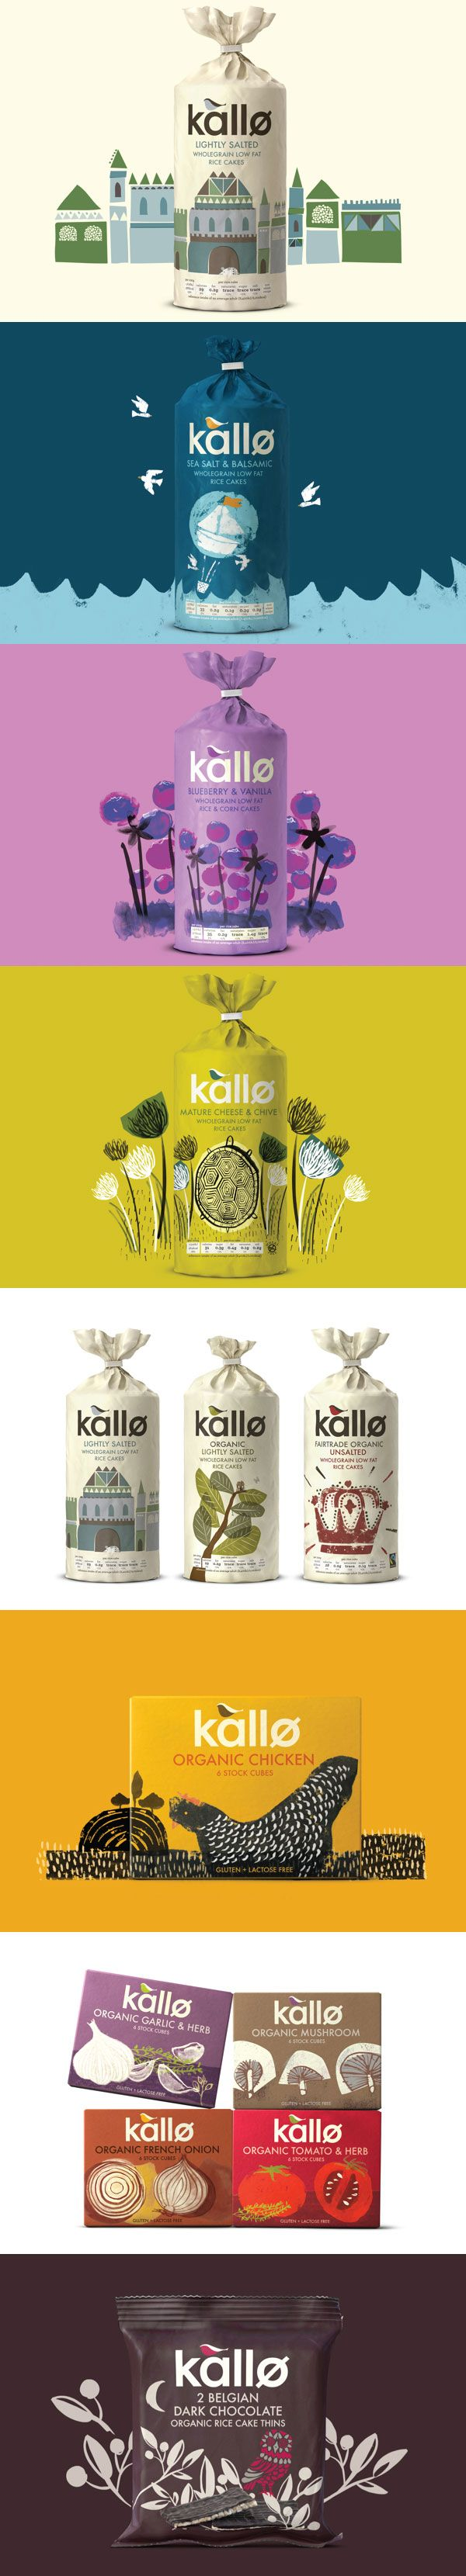 Kallo Branding, Graphic Design, Packaging By Big Fish PD